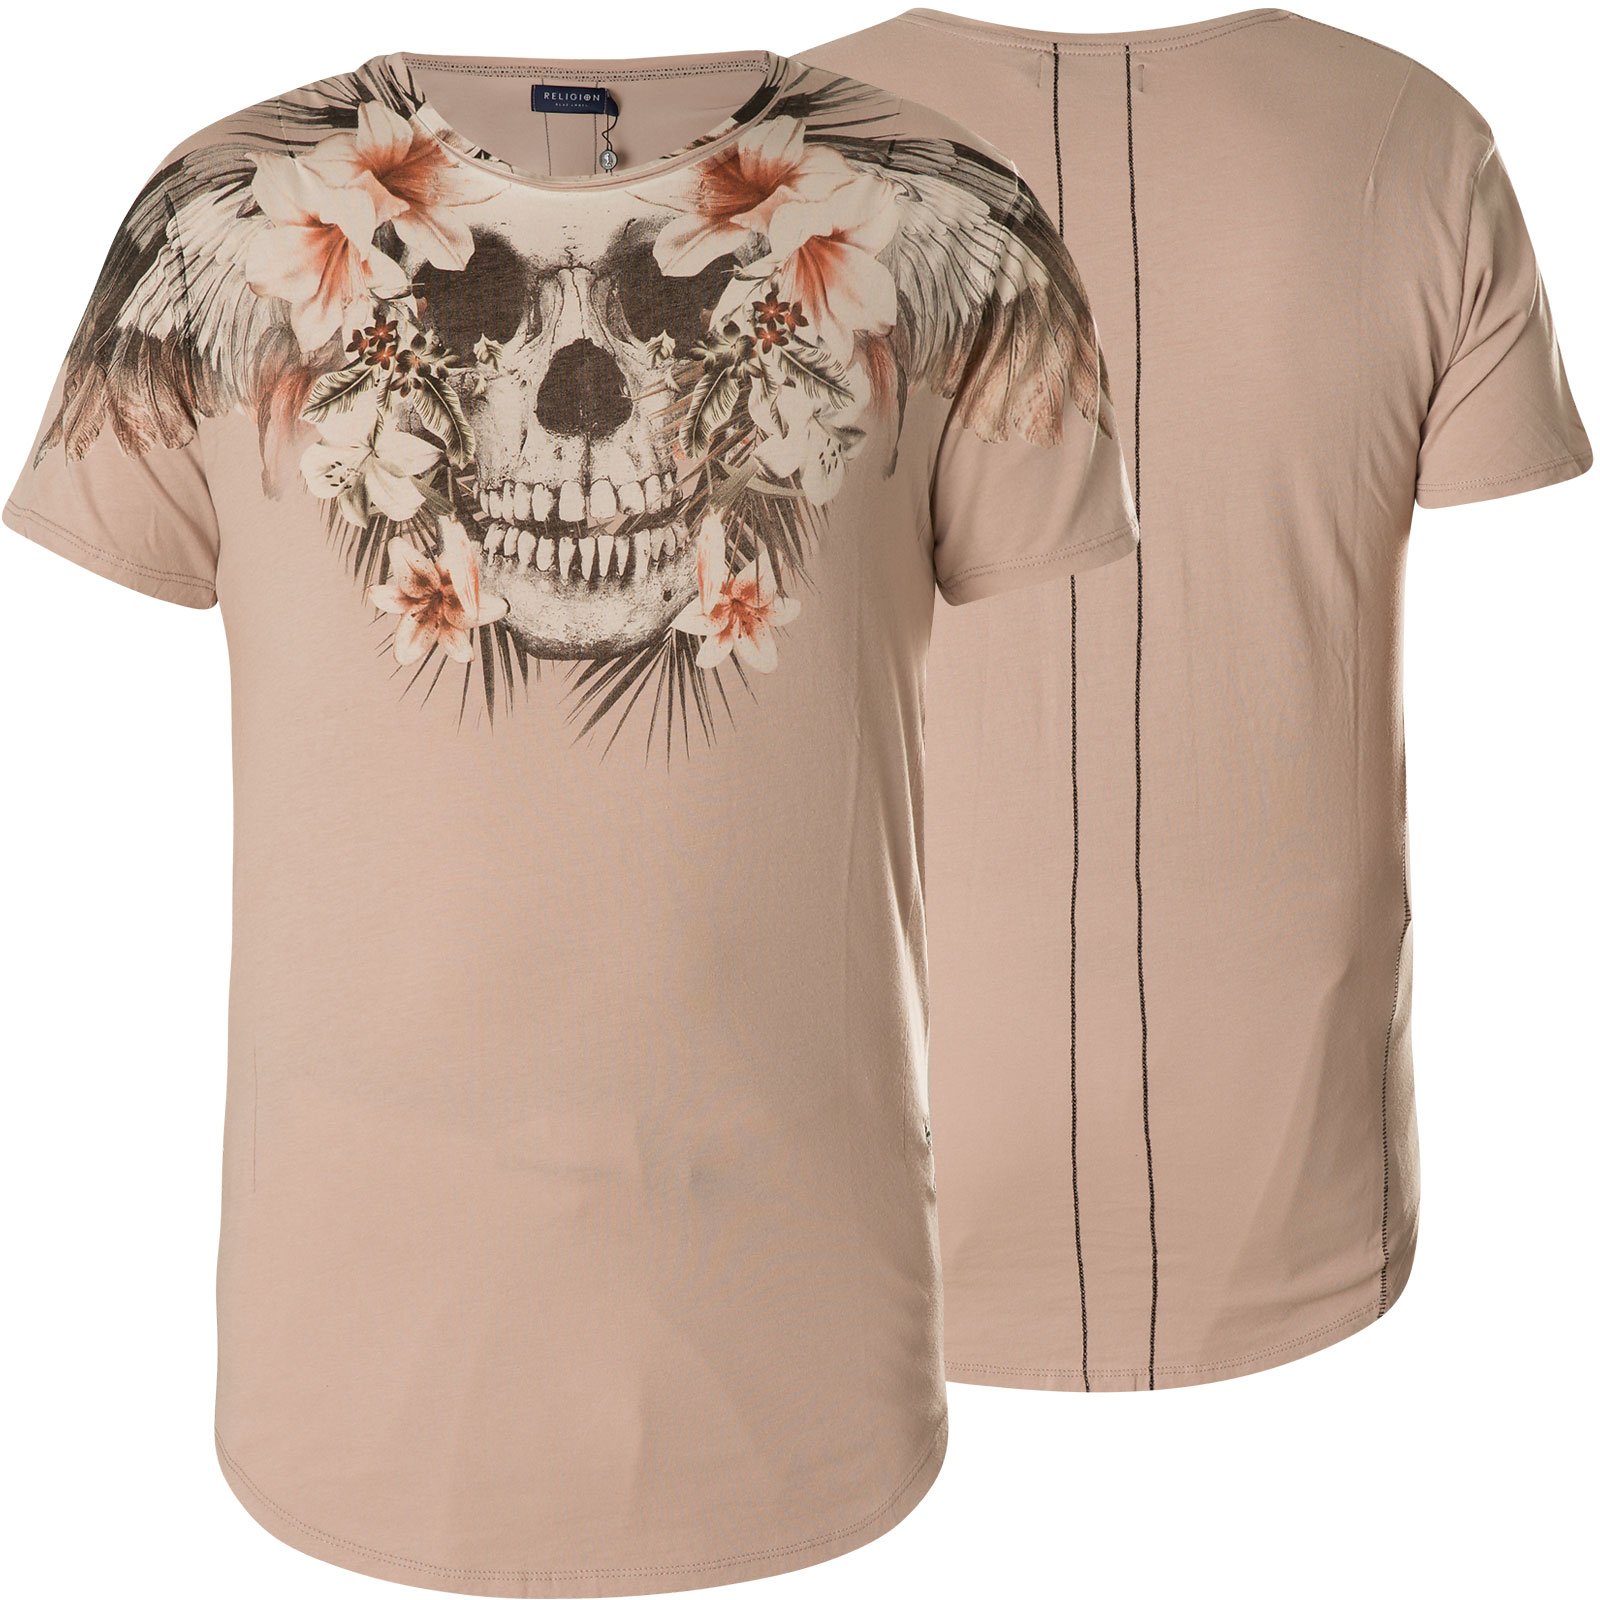 da0f672d7e2ec Religion T-Shirt Tropical Skull Curve Hem Tee 48BTSF30 Ashes Of Roses.  Loading zoom